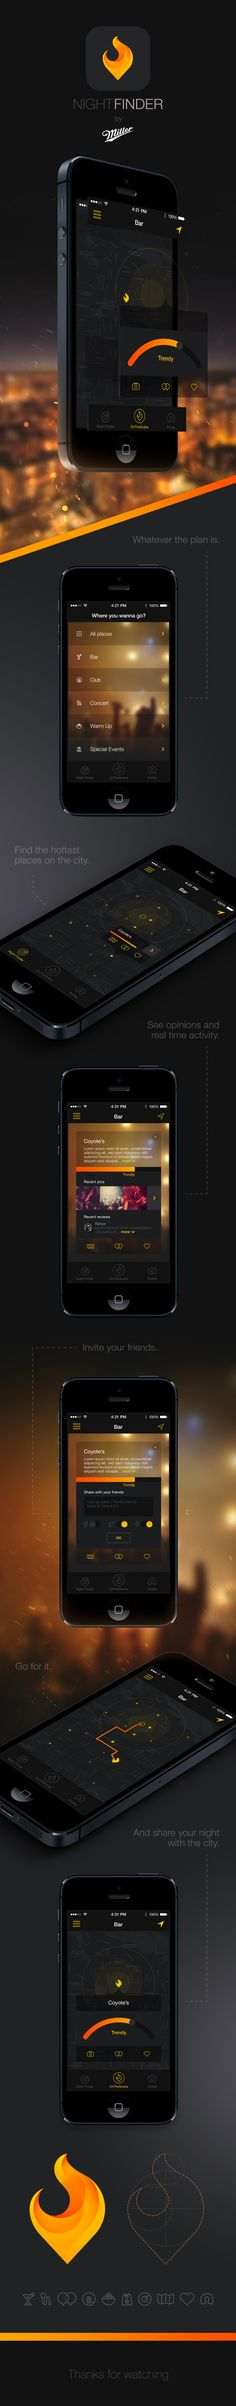 iOS 7 redesign exercise of a project I participated last year for Miller Genuine Draft (MGD).